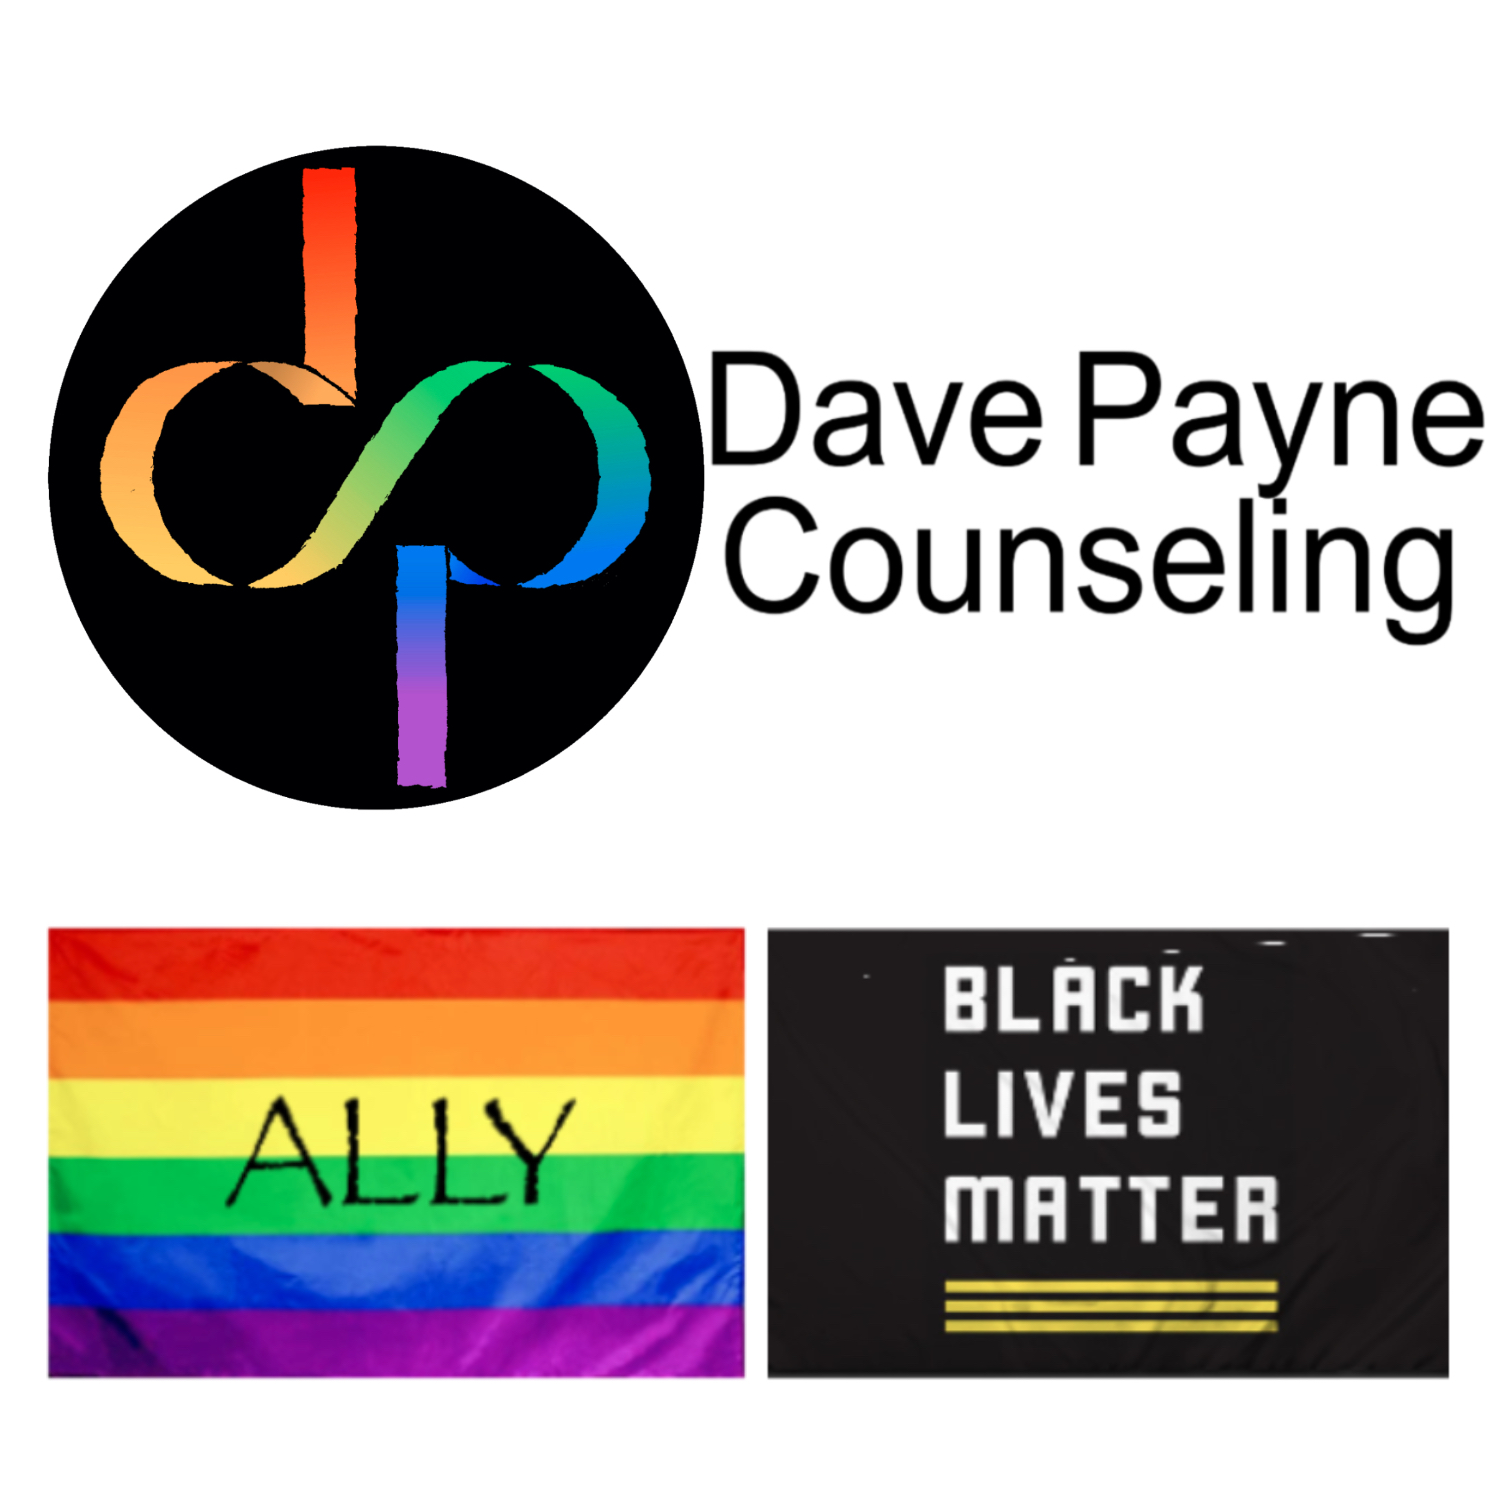 Dave Payne Counseling